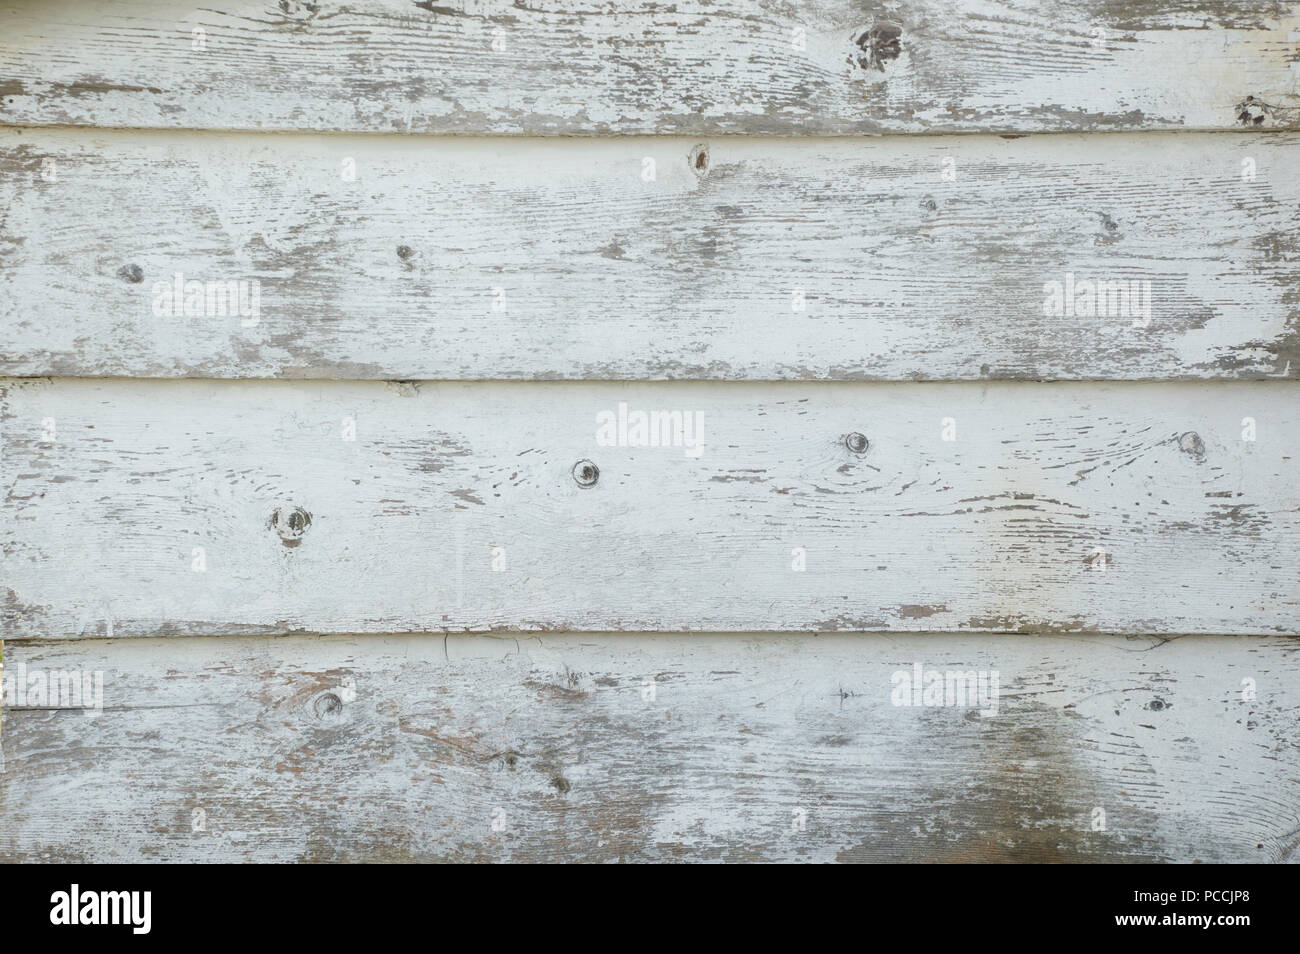 Closeup of grunge white painted boards that are distressed and worn background - Stock Image